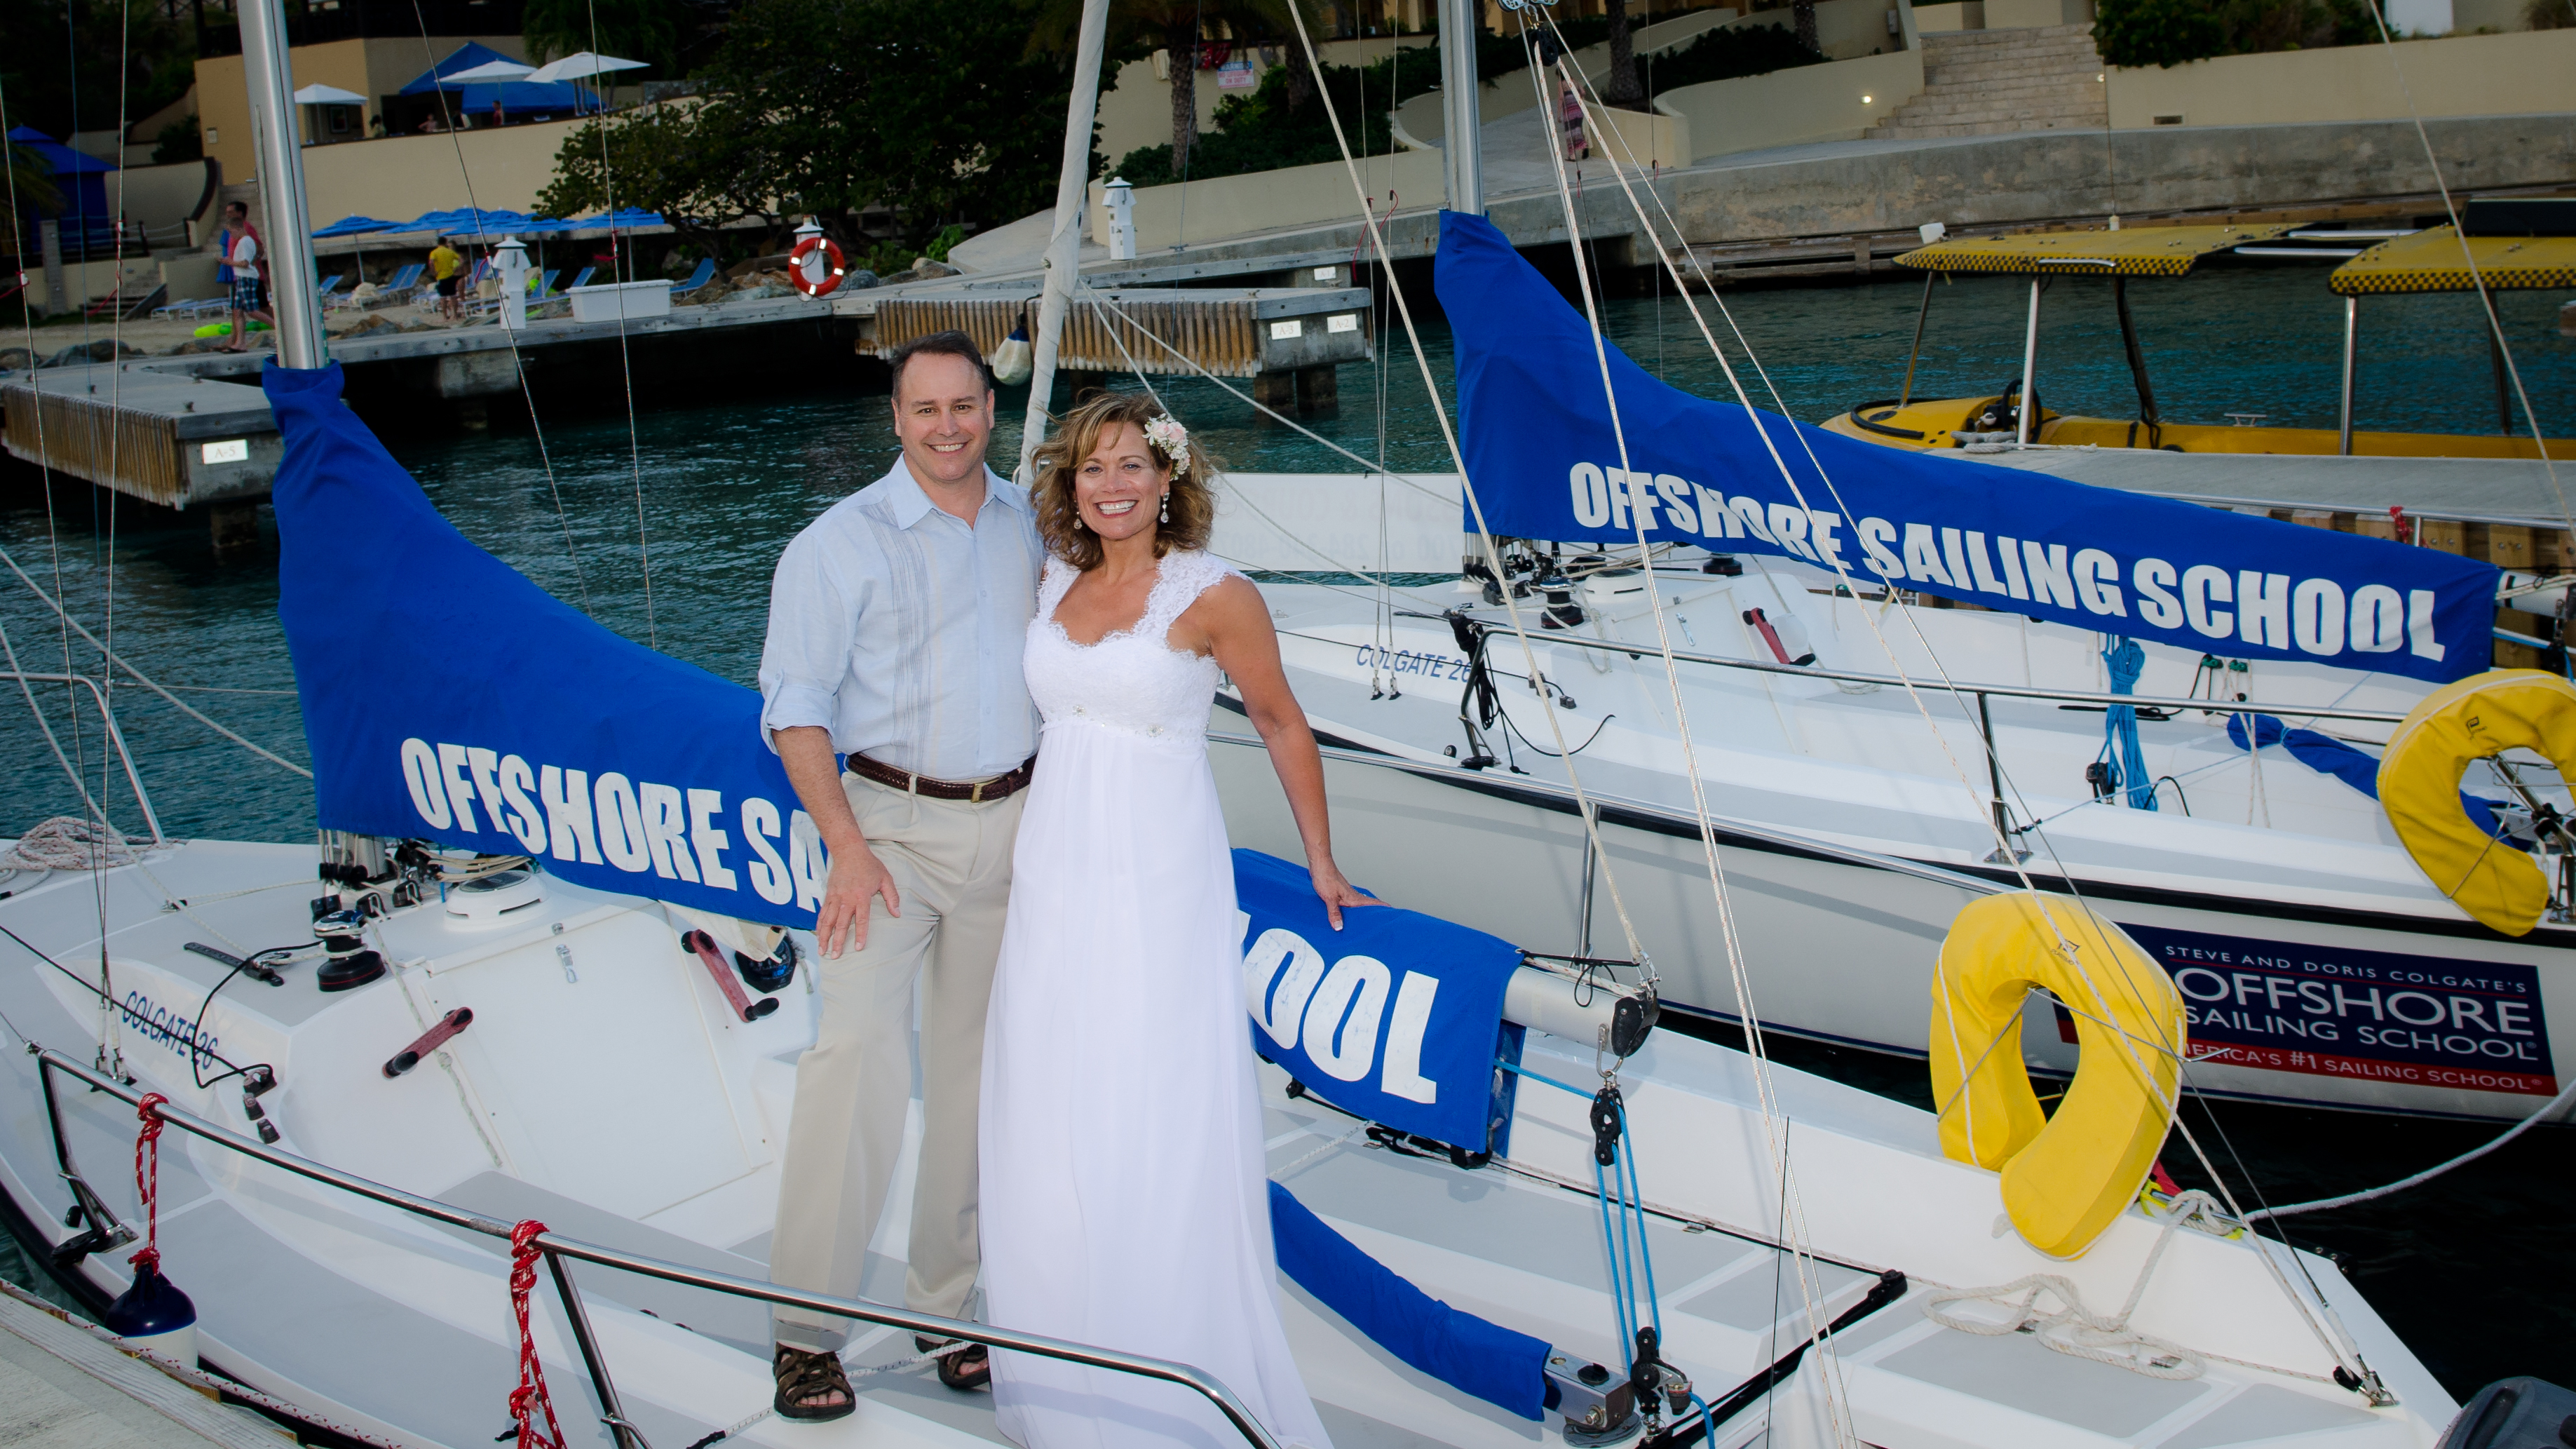 Our Offshore Sailing School Wedding